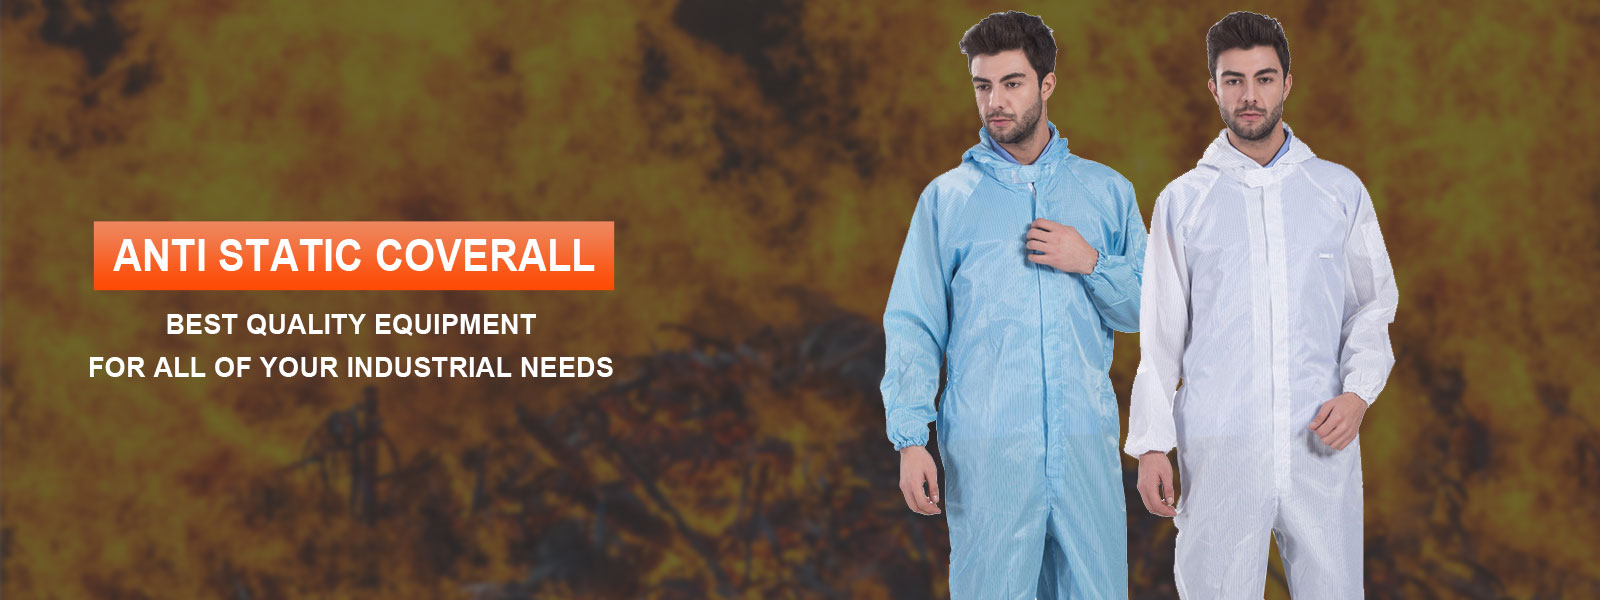 Anti Static Coverall Manufacturers in Nagpur